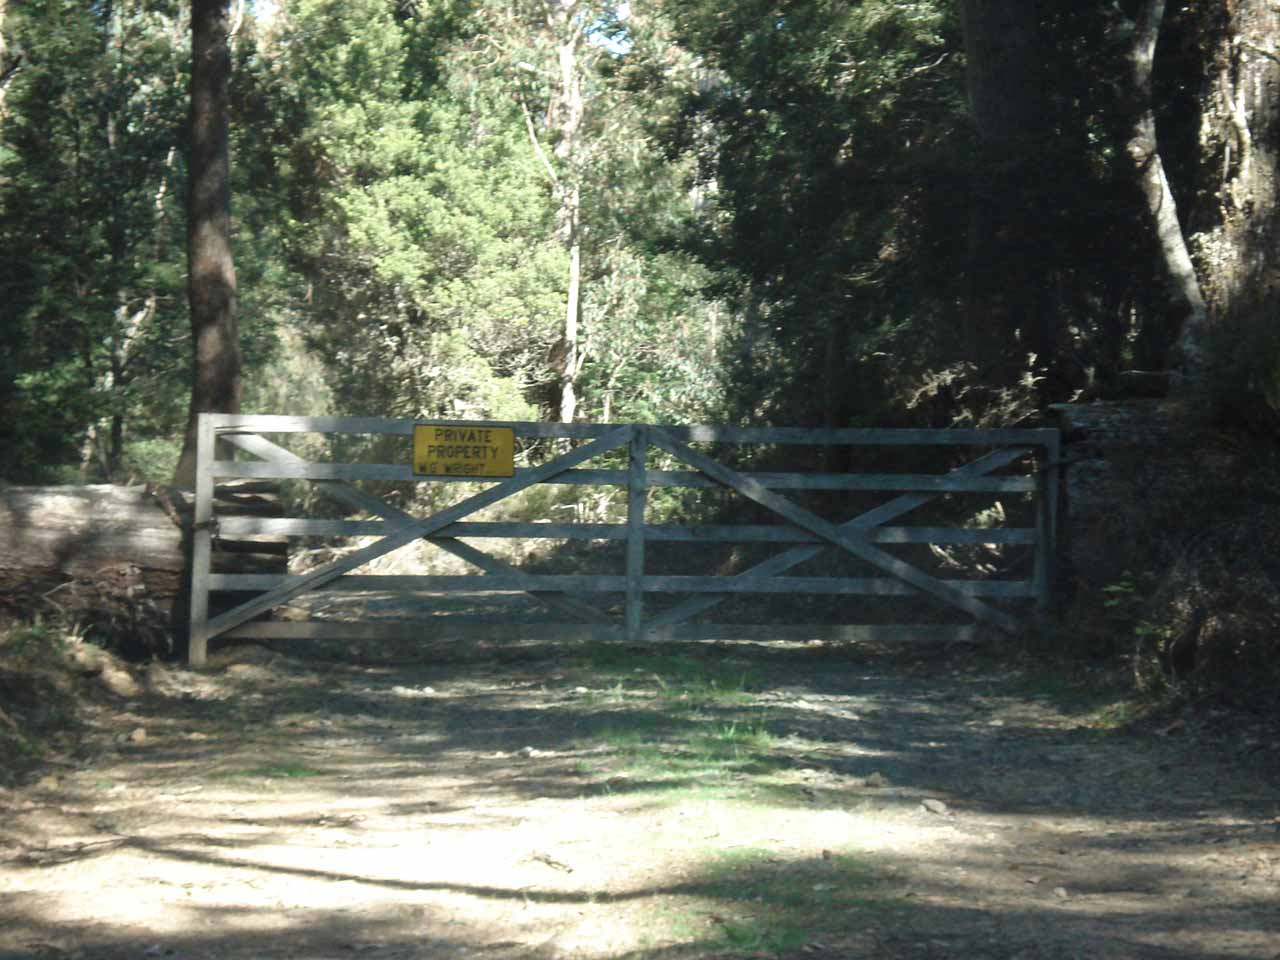 A fenced off private property access by Quailes Falls Track